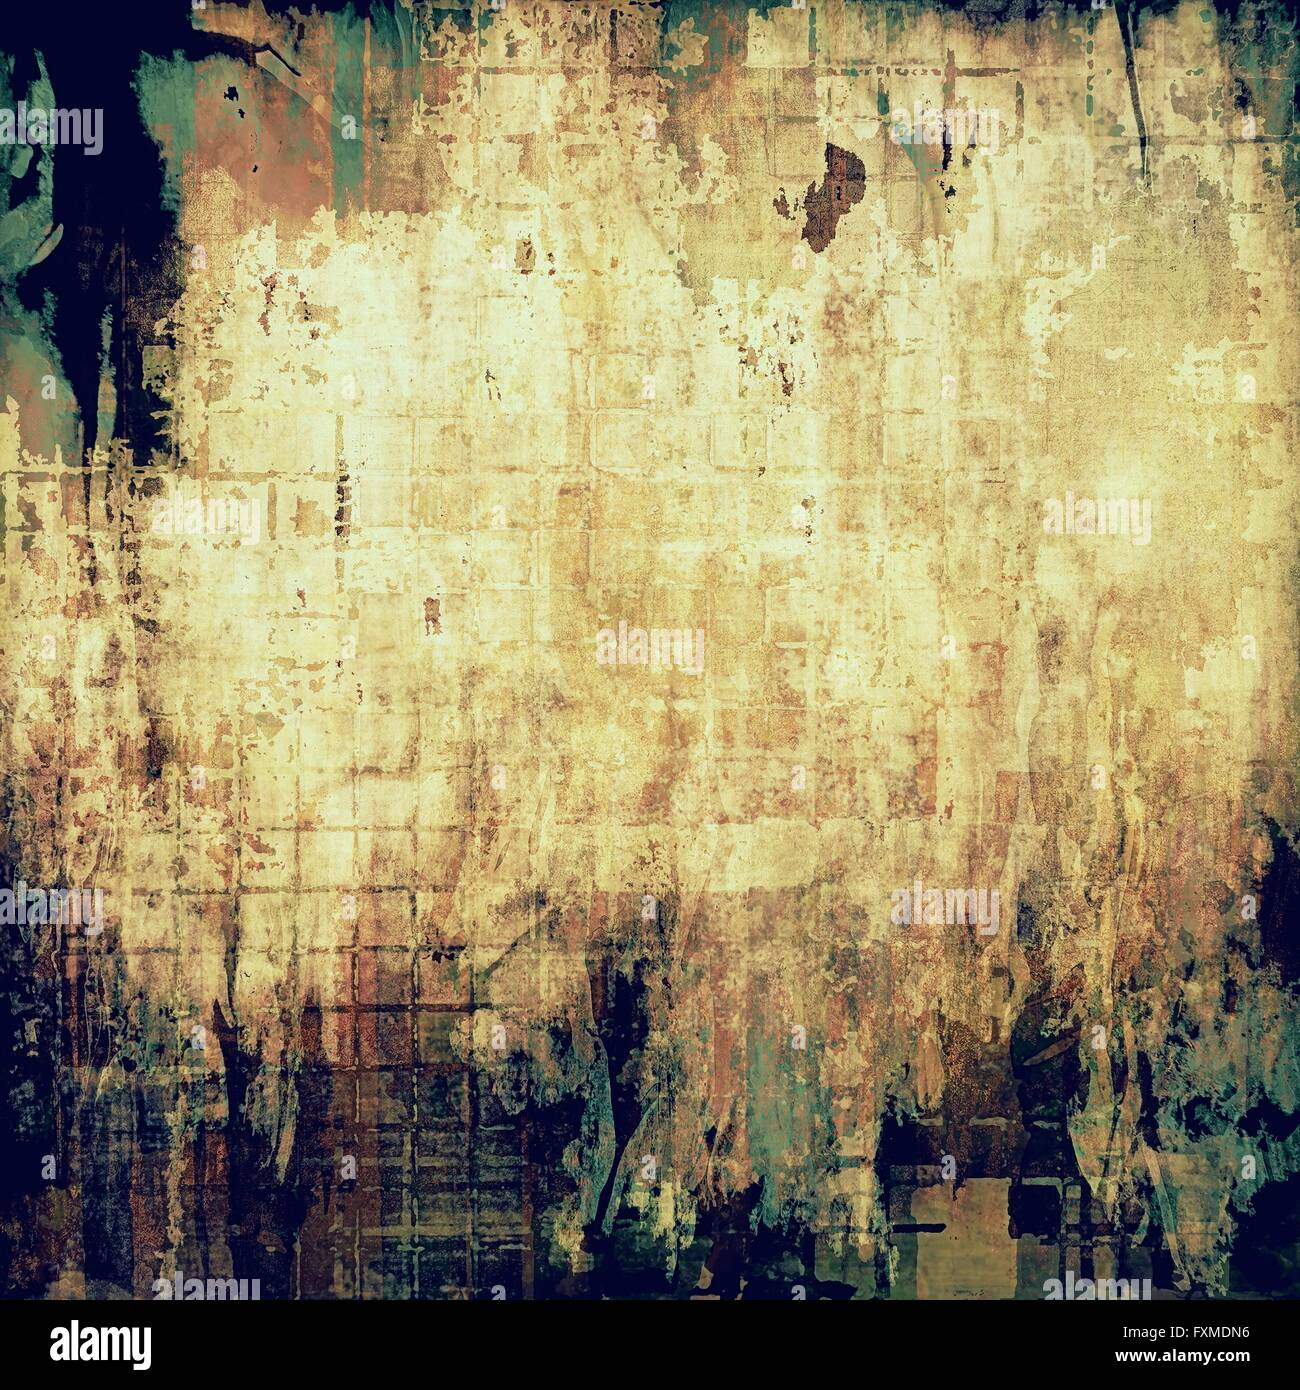 Background image mdn - Old School Elements On Textured Grunge Background With Different Color Patterns Yellow Beige